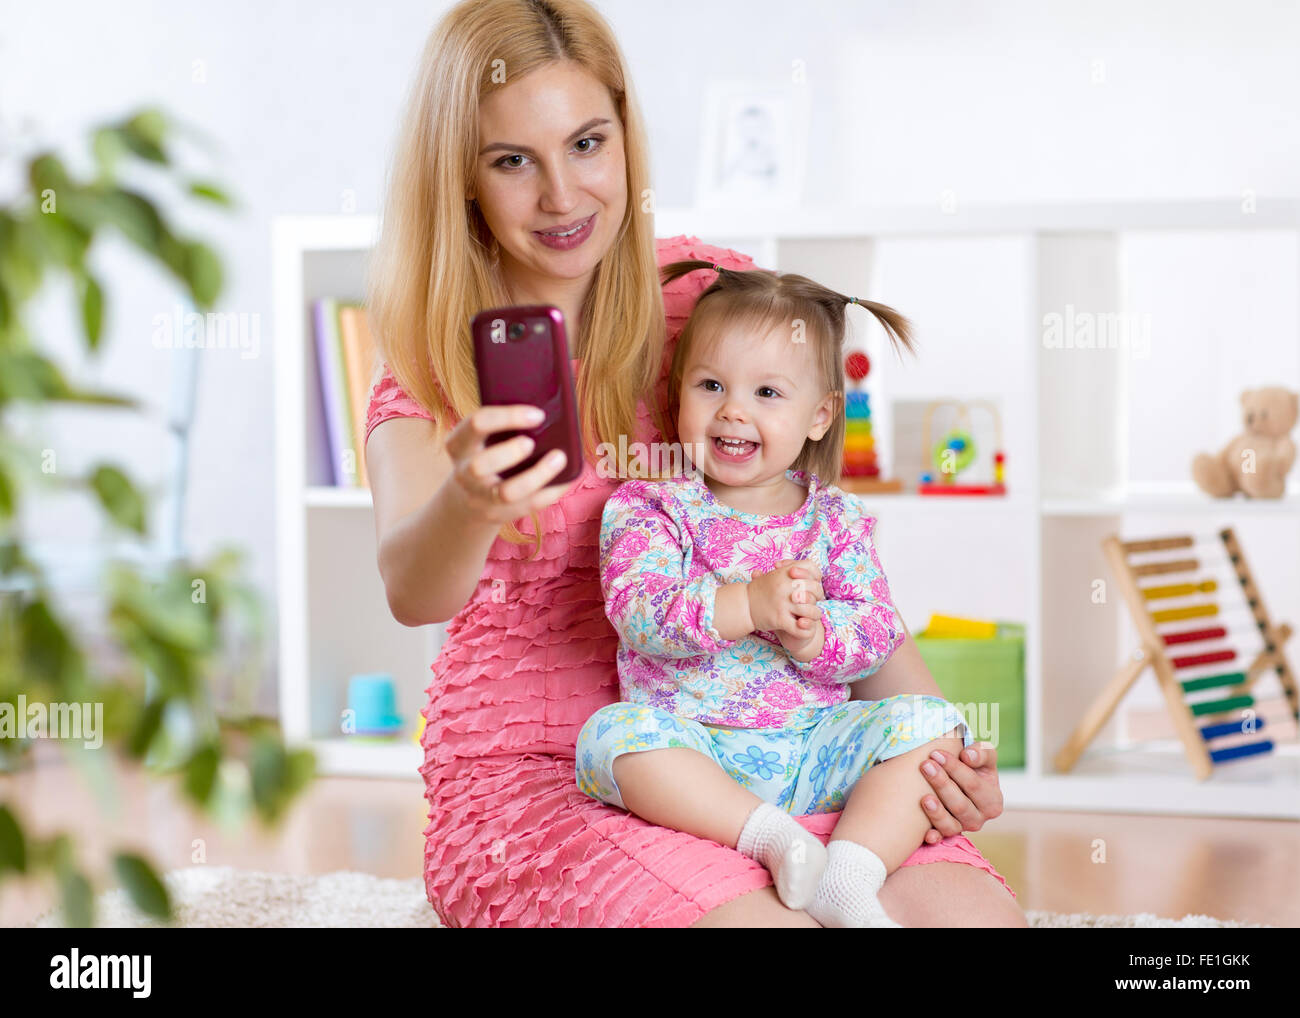 Mother and daughter taking selfie - Stock Image